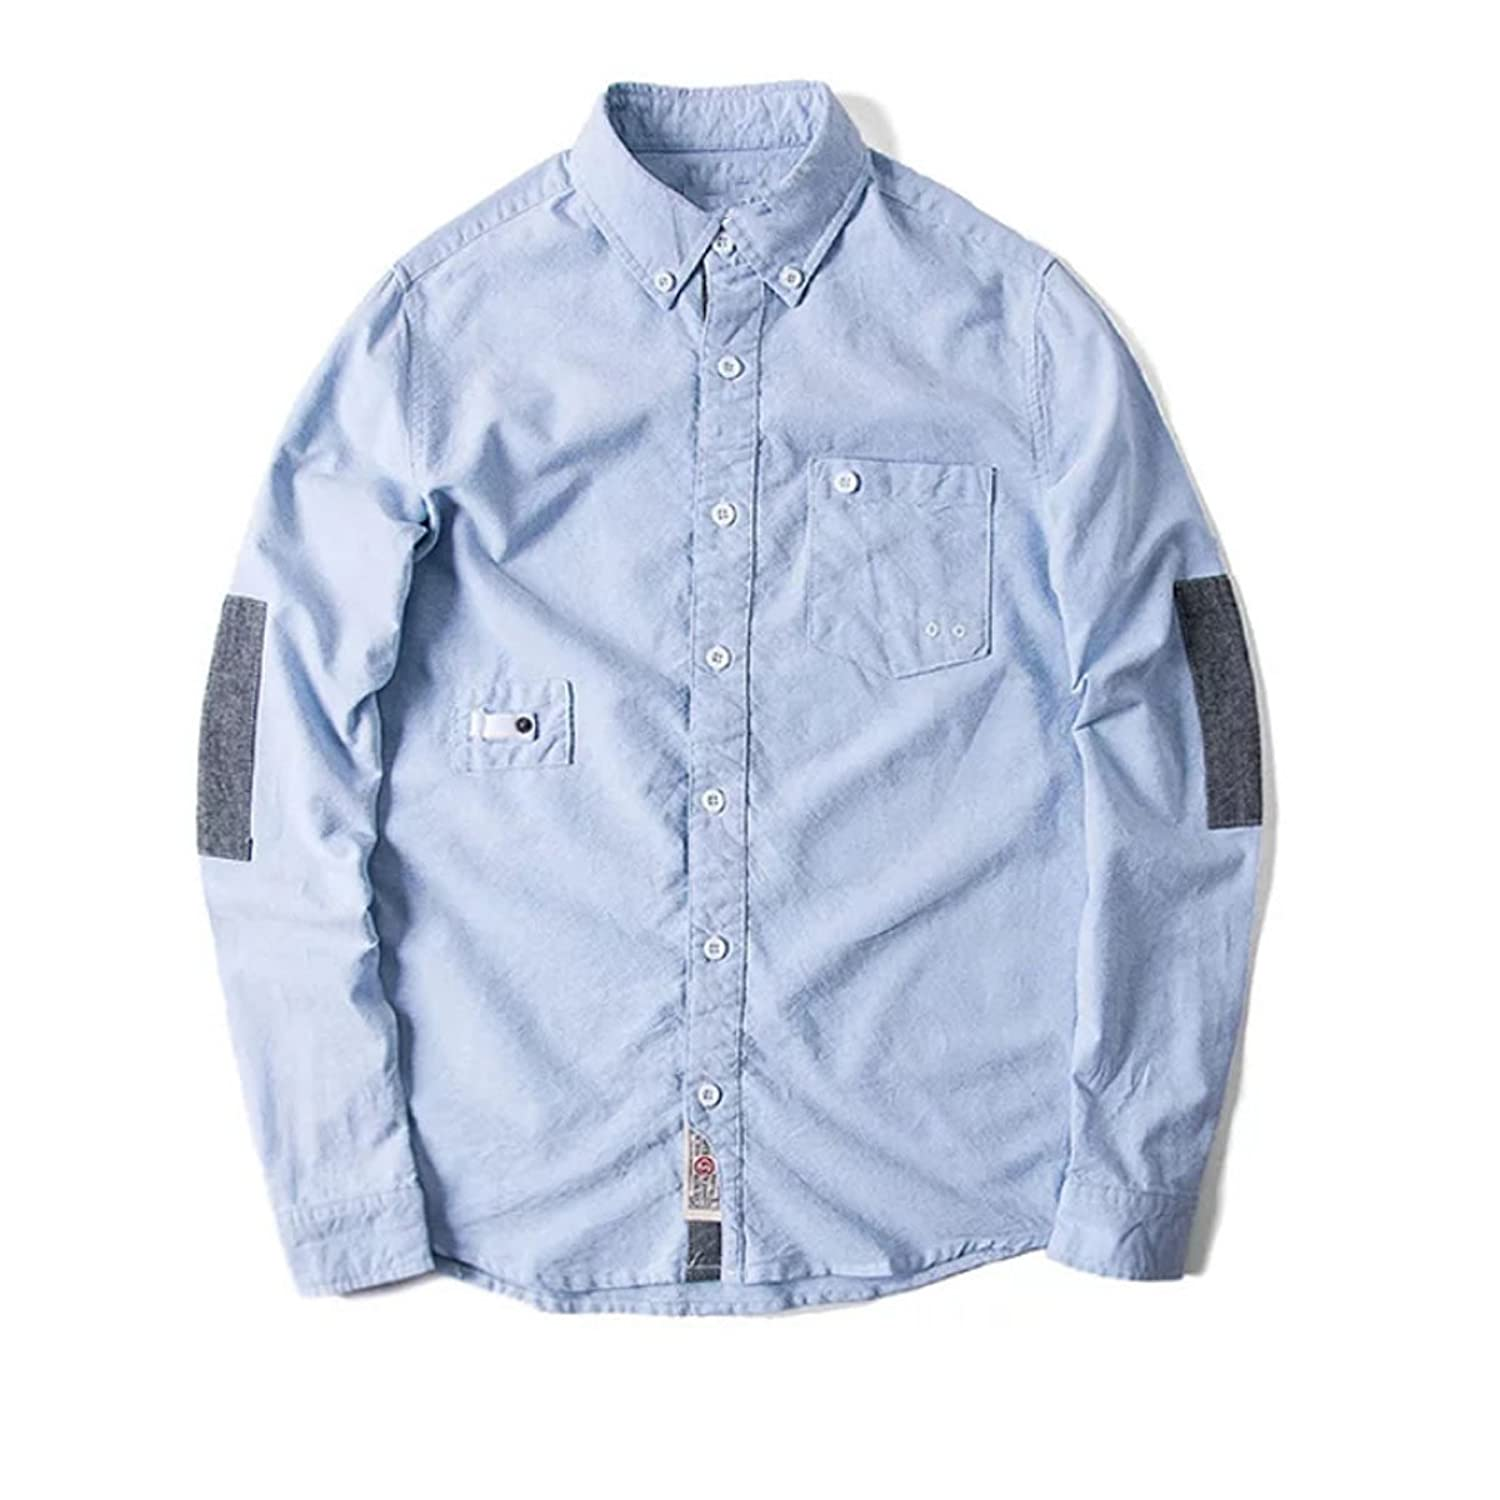 Spring Section Of Cotton Leisure Young People Fight Color Blue Men 's Shirts